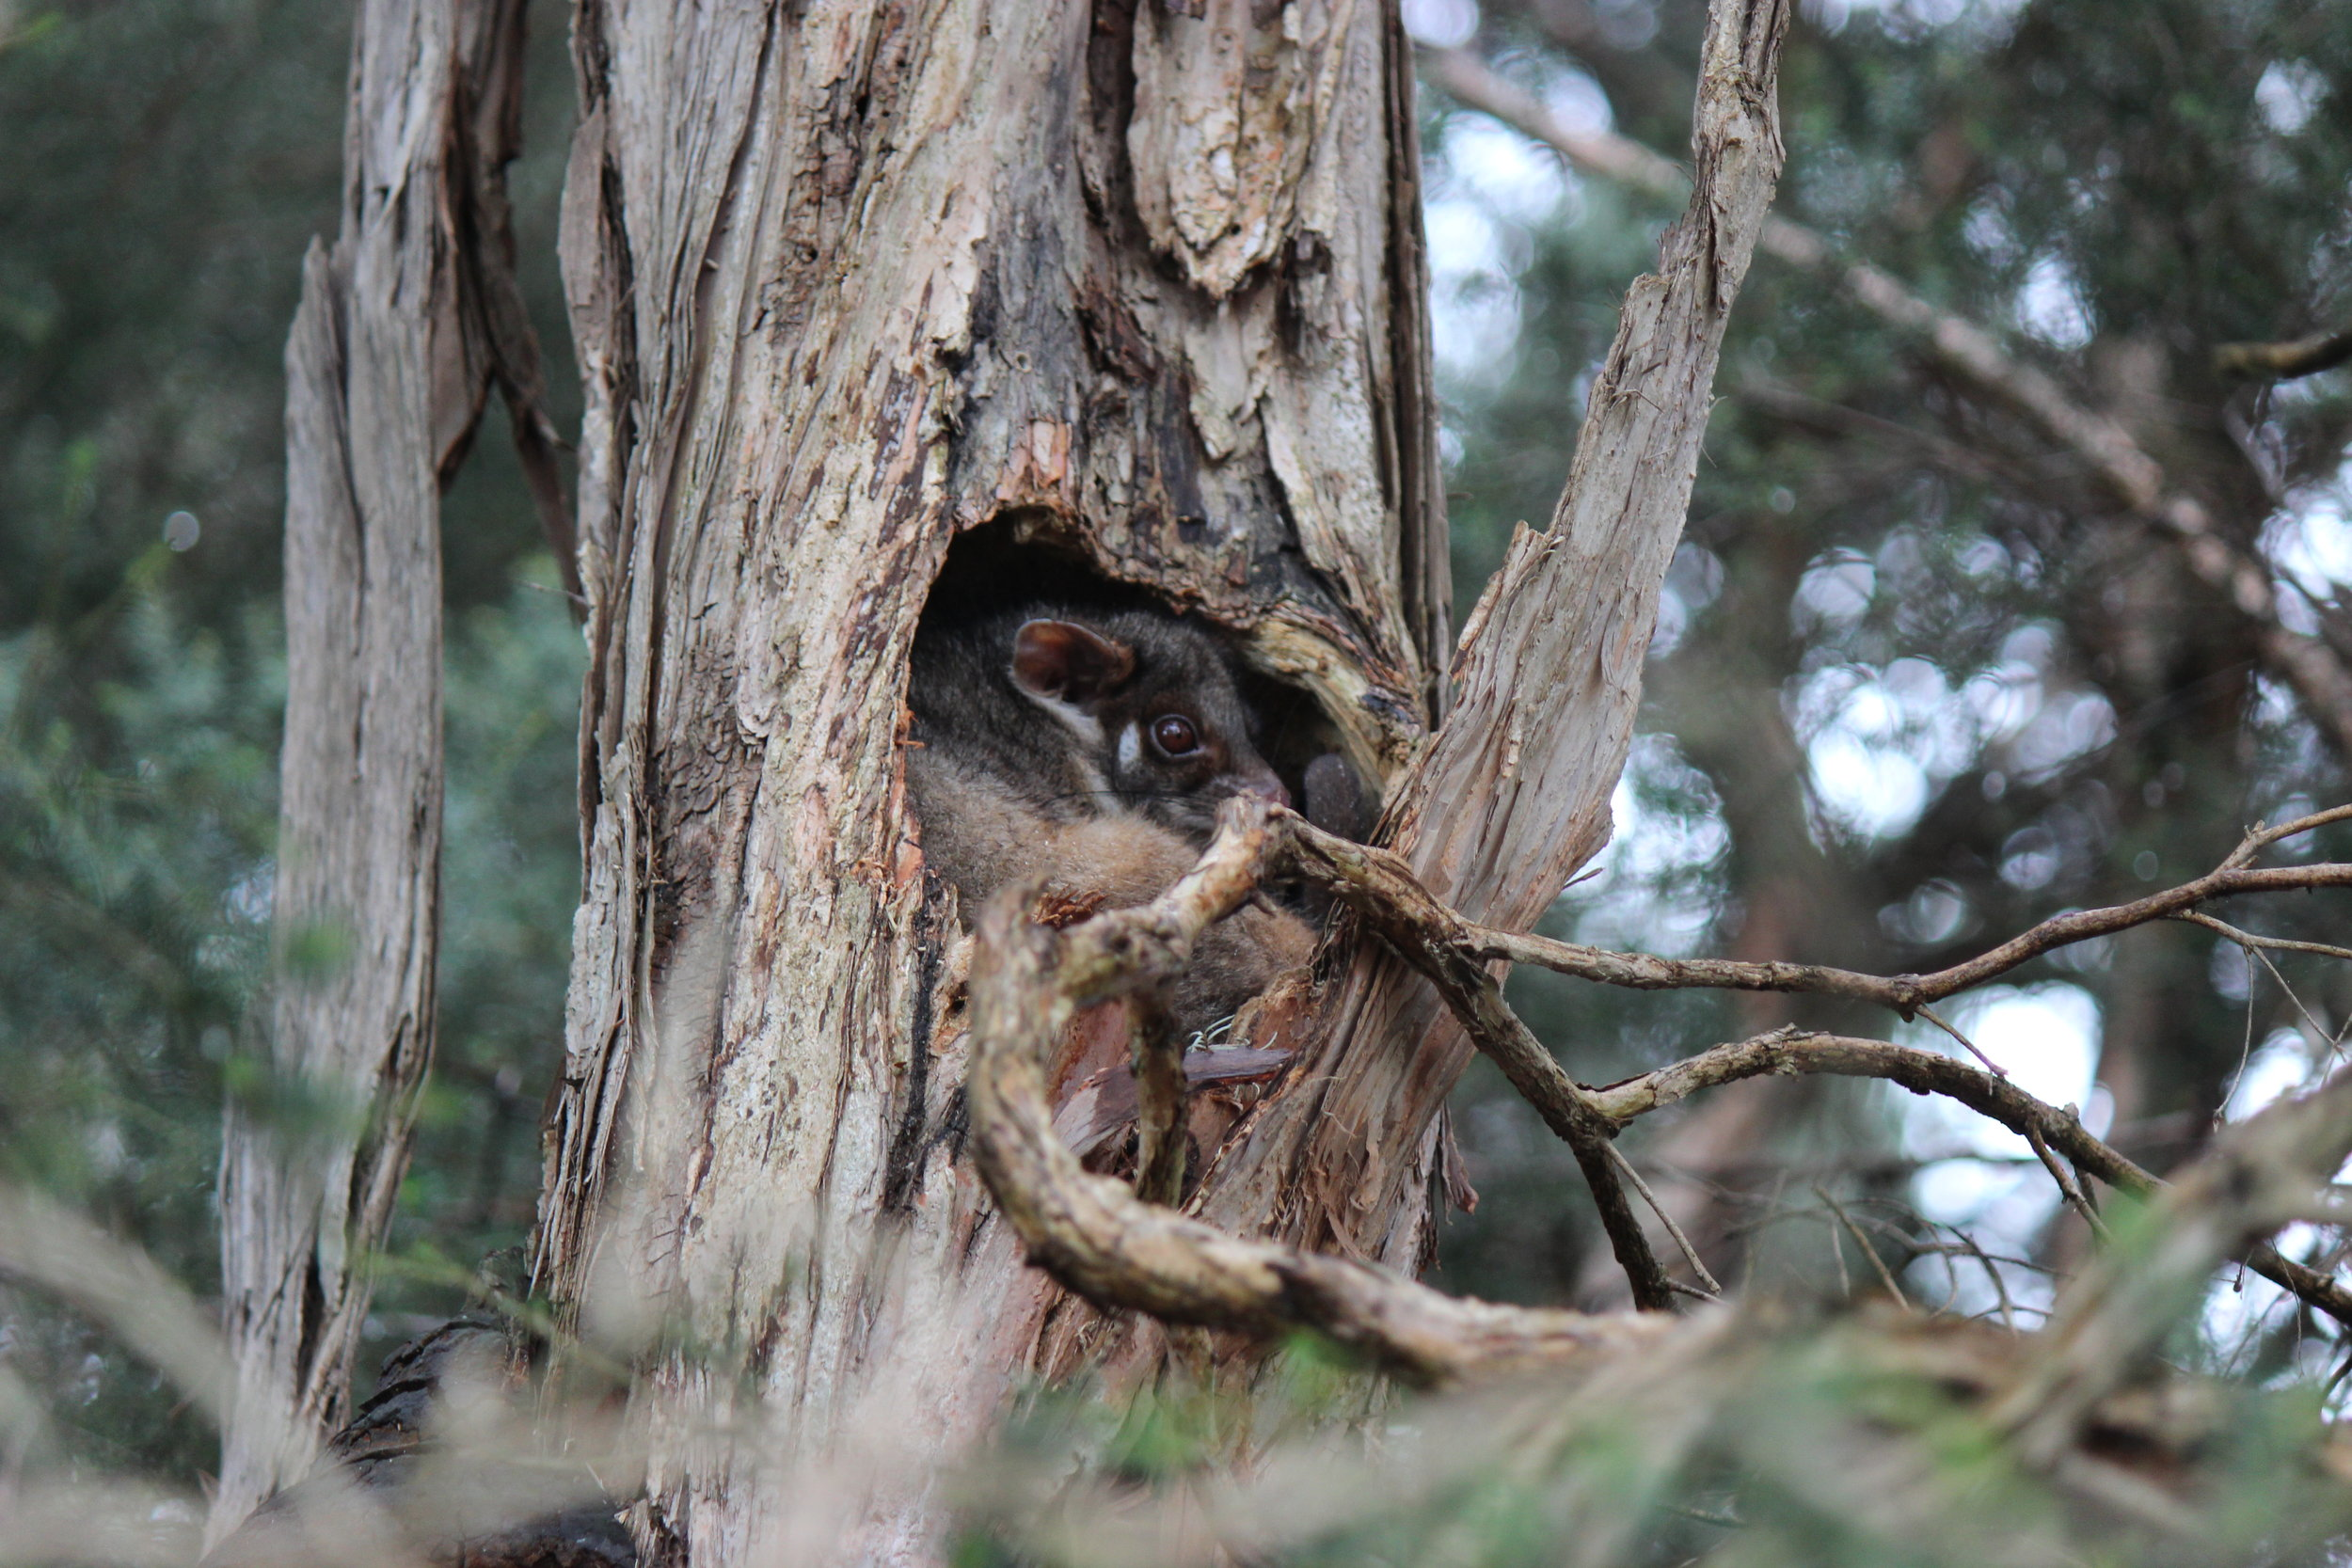 A ringtail possum curls up in a tree hollow. Image:   Andrew Stocker (La Trobe Wildlife Sanctuary)